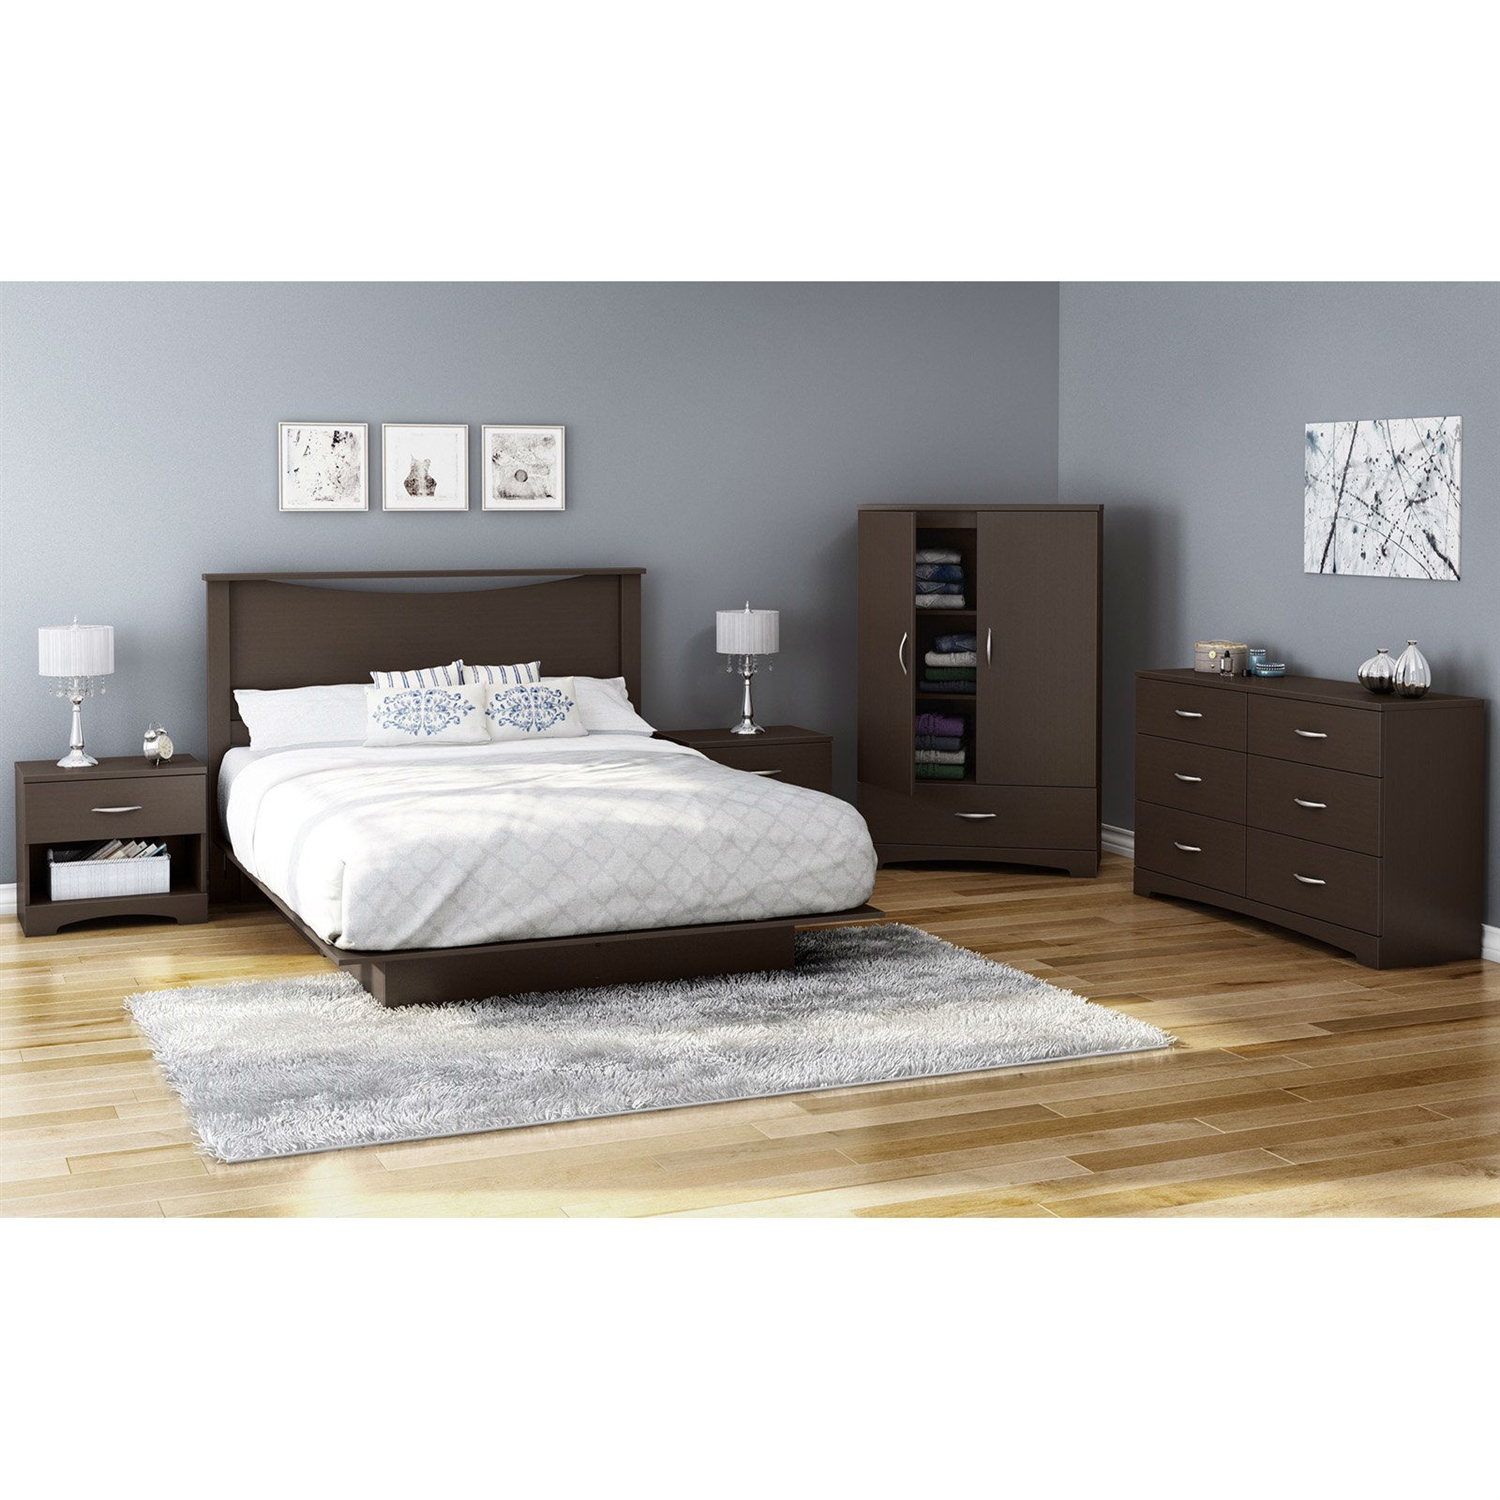 Retail Price $319.00  sc 1 st  FastFurnishings.com & Contemporary 2-Door Armoire Wardrobe Cabinet with Bottom Drawer in ...